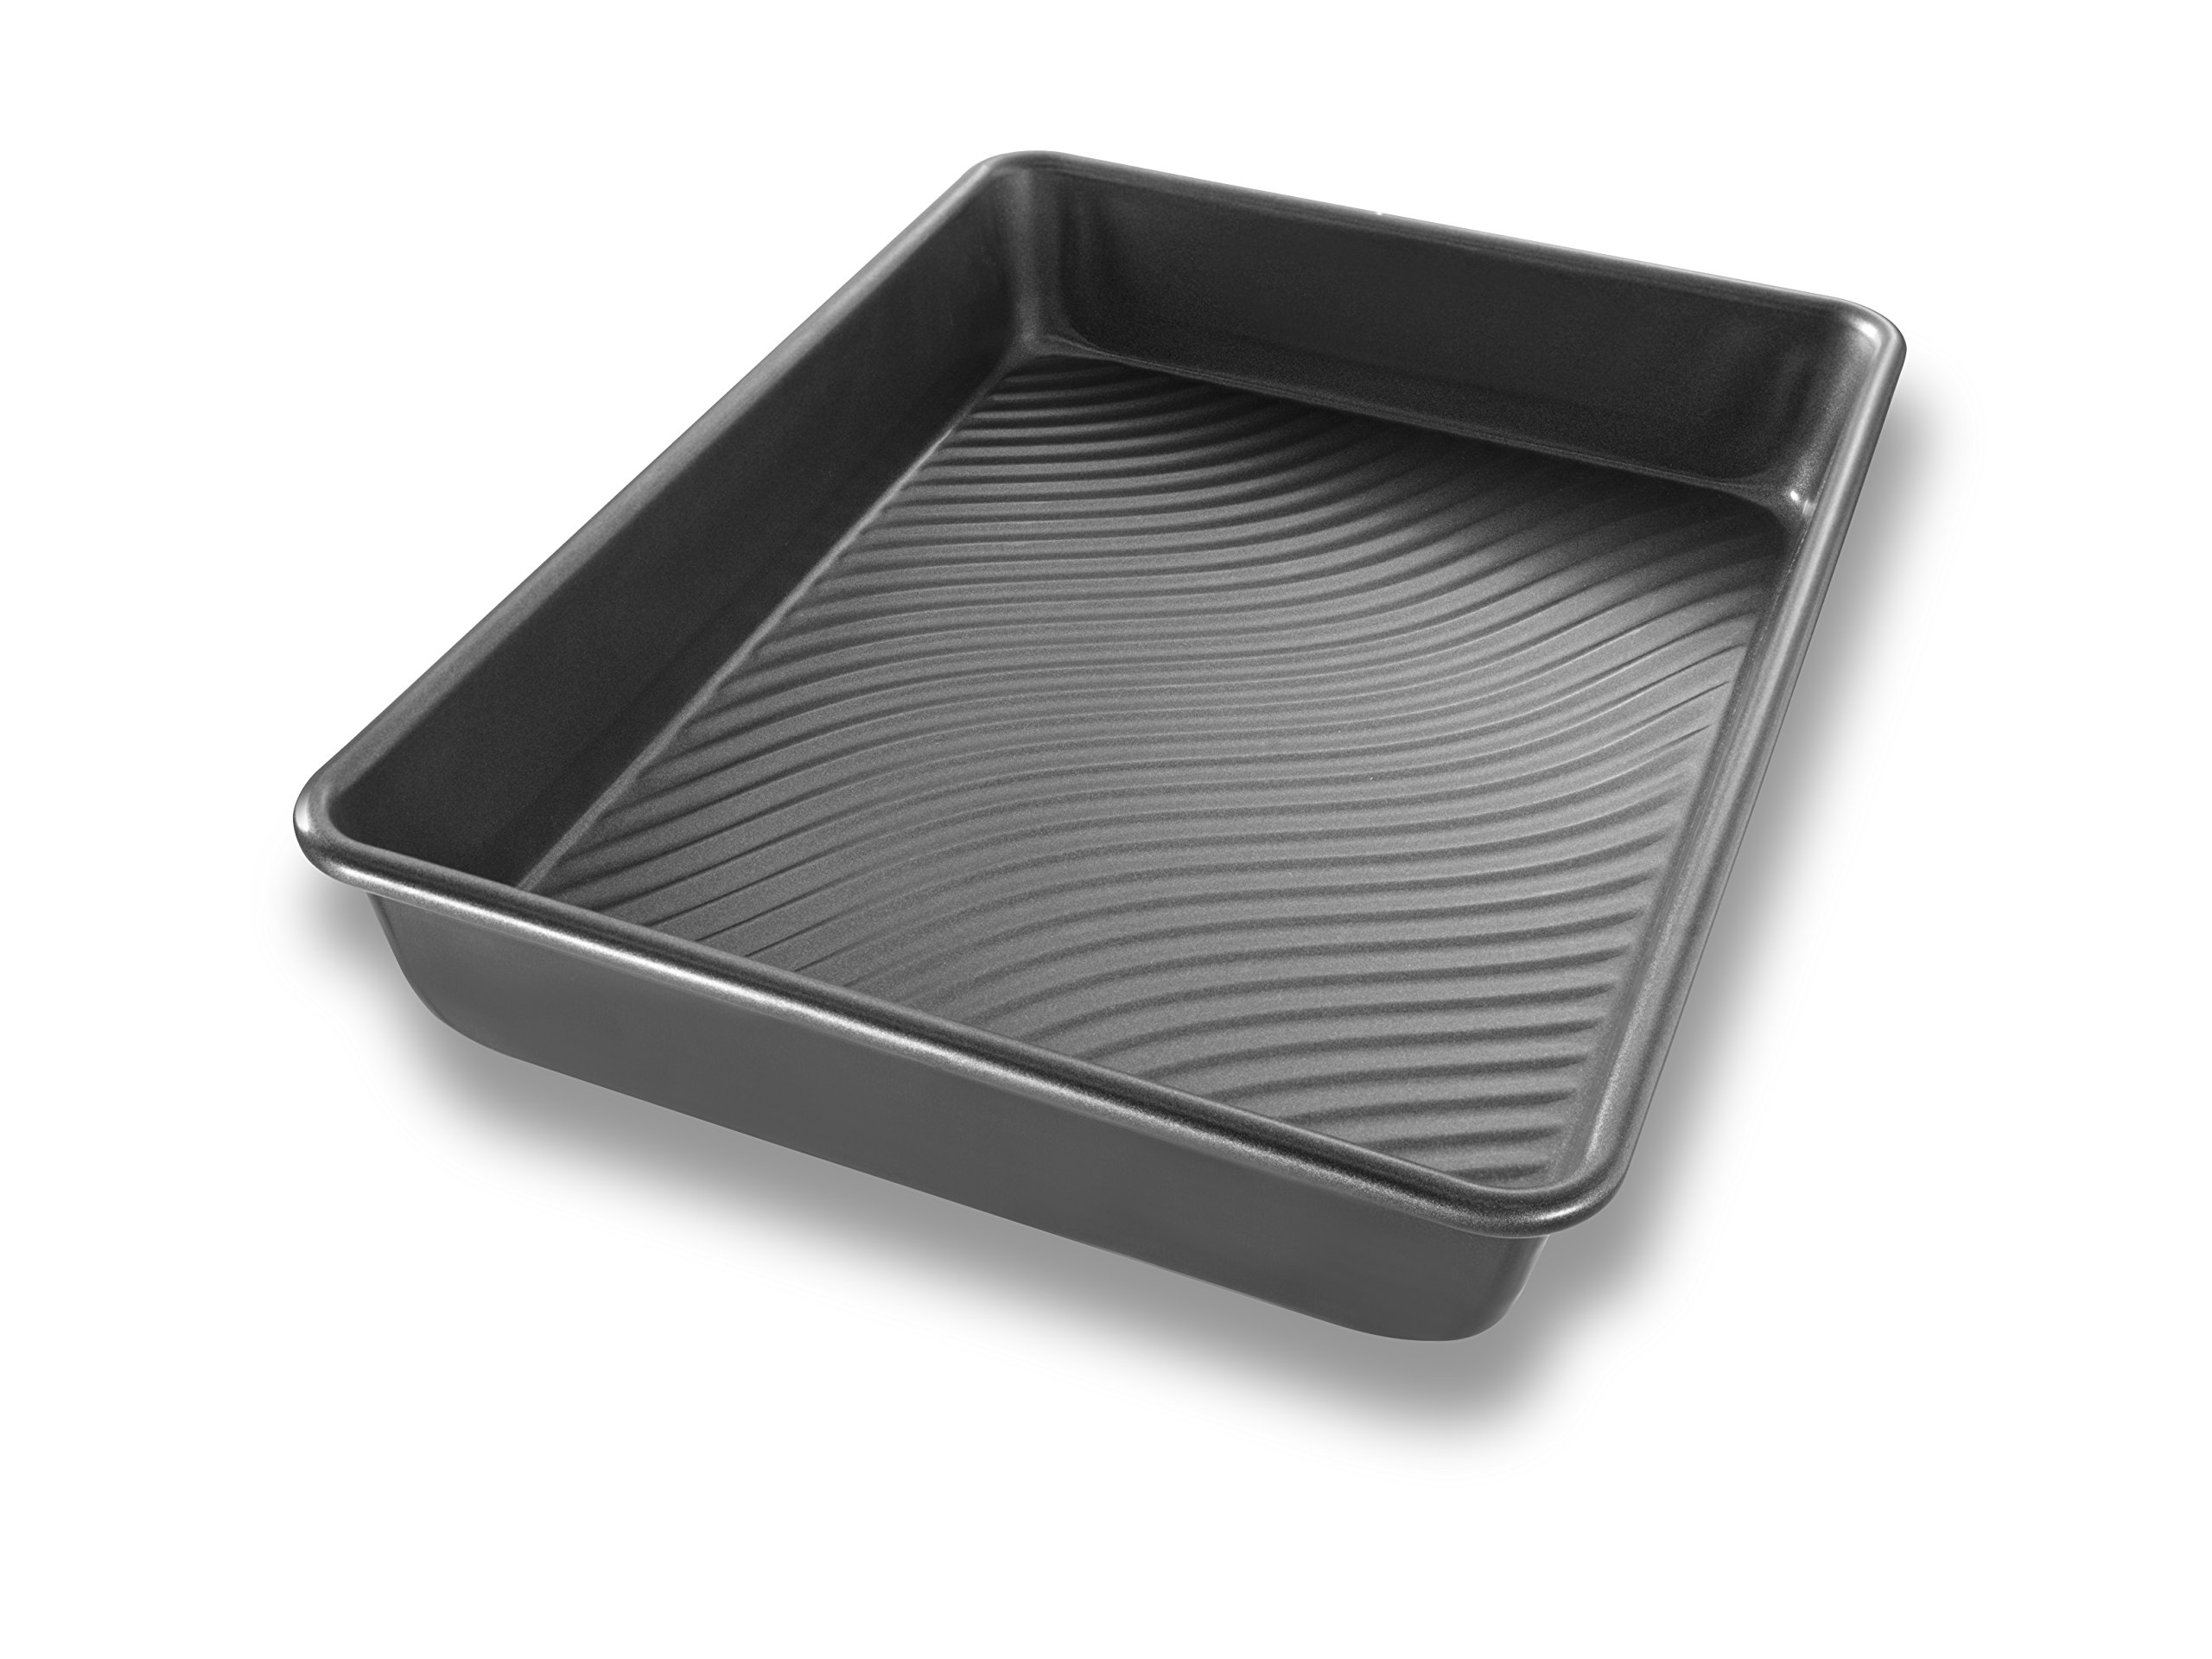 USA Pan Patriot Pan Bakeware Aluminized Steel Rectangular Cake Pan